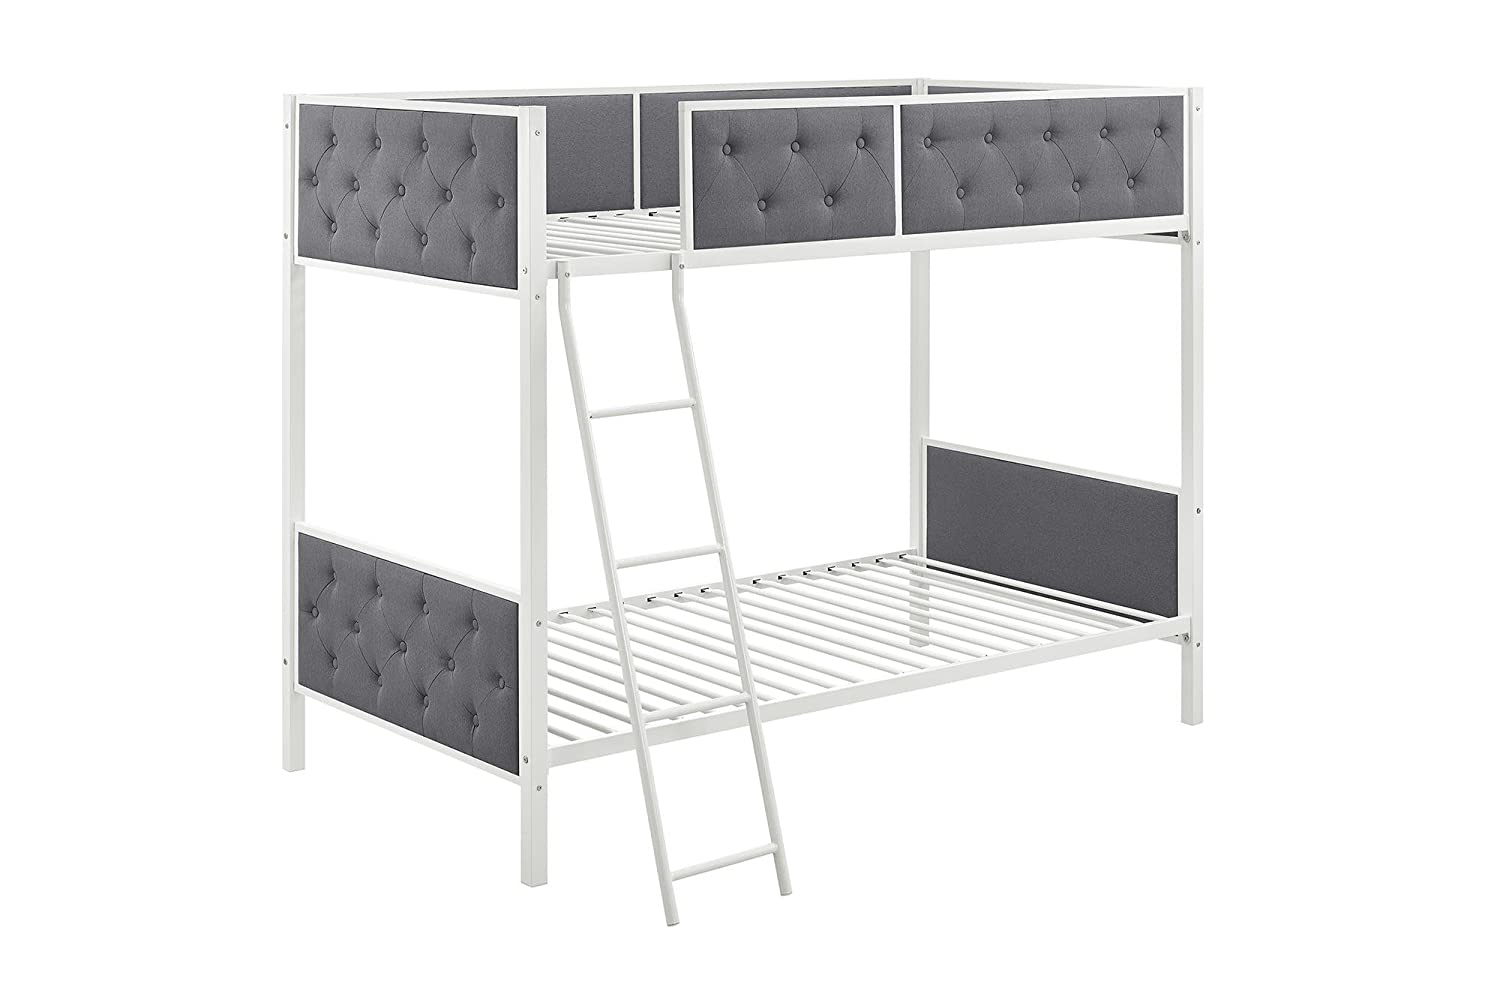 DHP Chesterfield Upholstered Linen Bunk Bed, Twin Size - White Metal/Grey Upholstery Dorel Home Furnishings 4065119